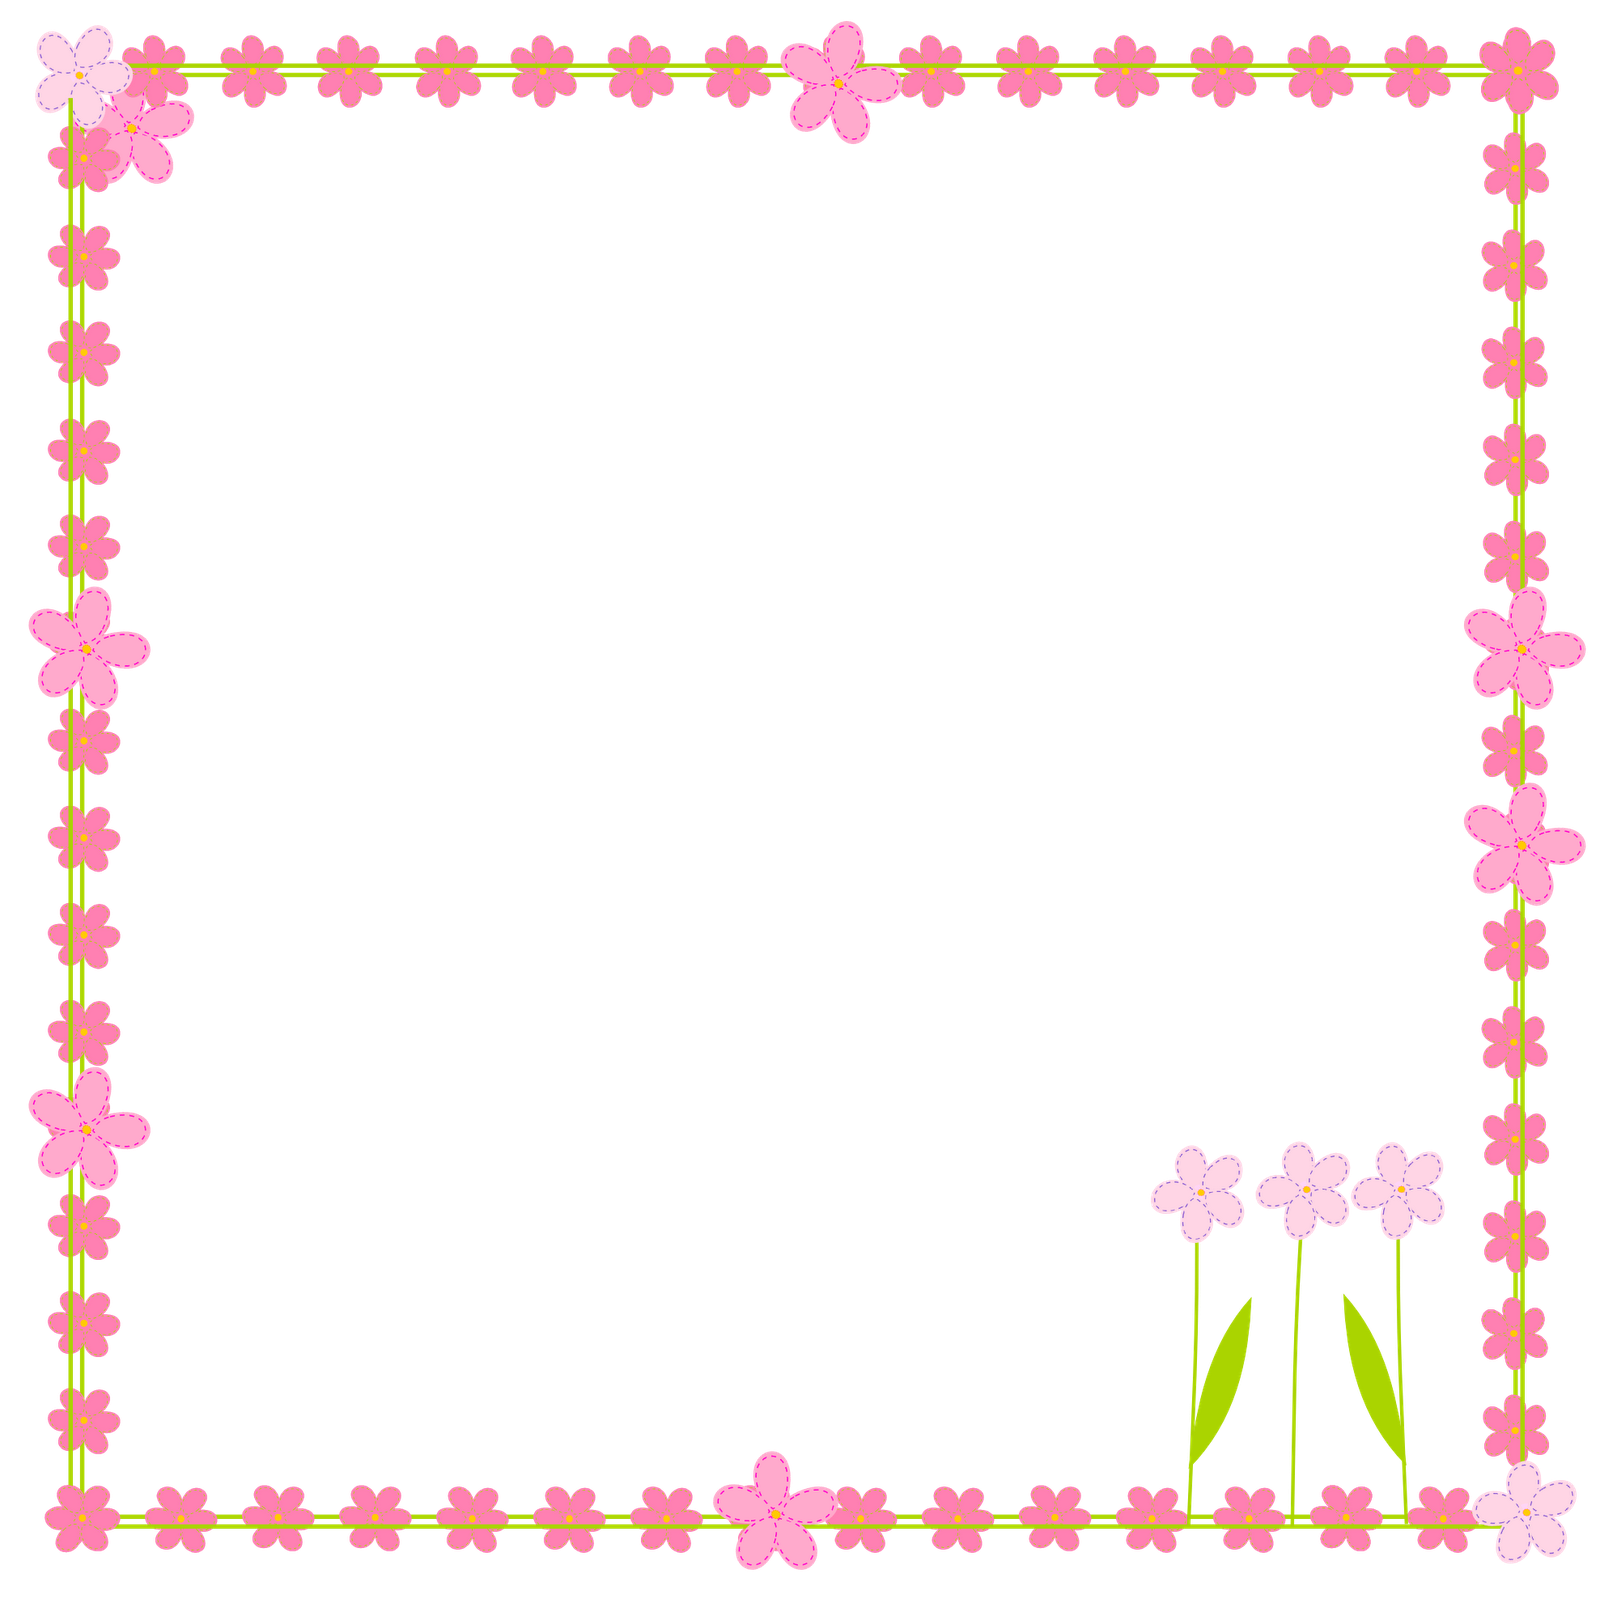 1600x1599 Flower With Transparent Background Clipart